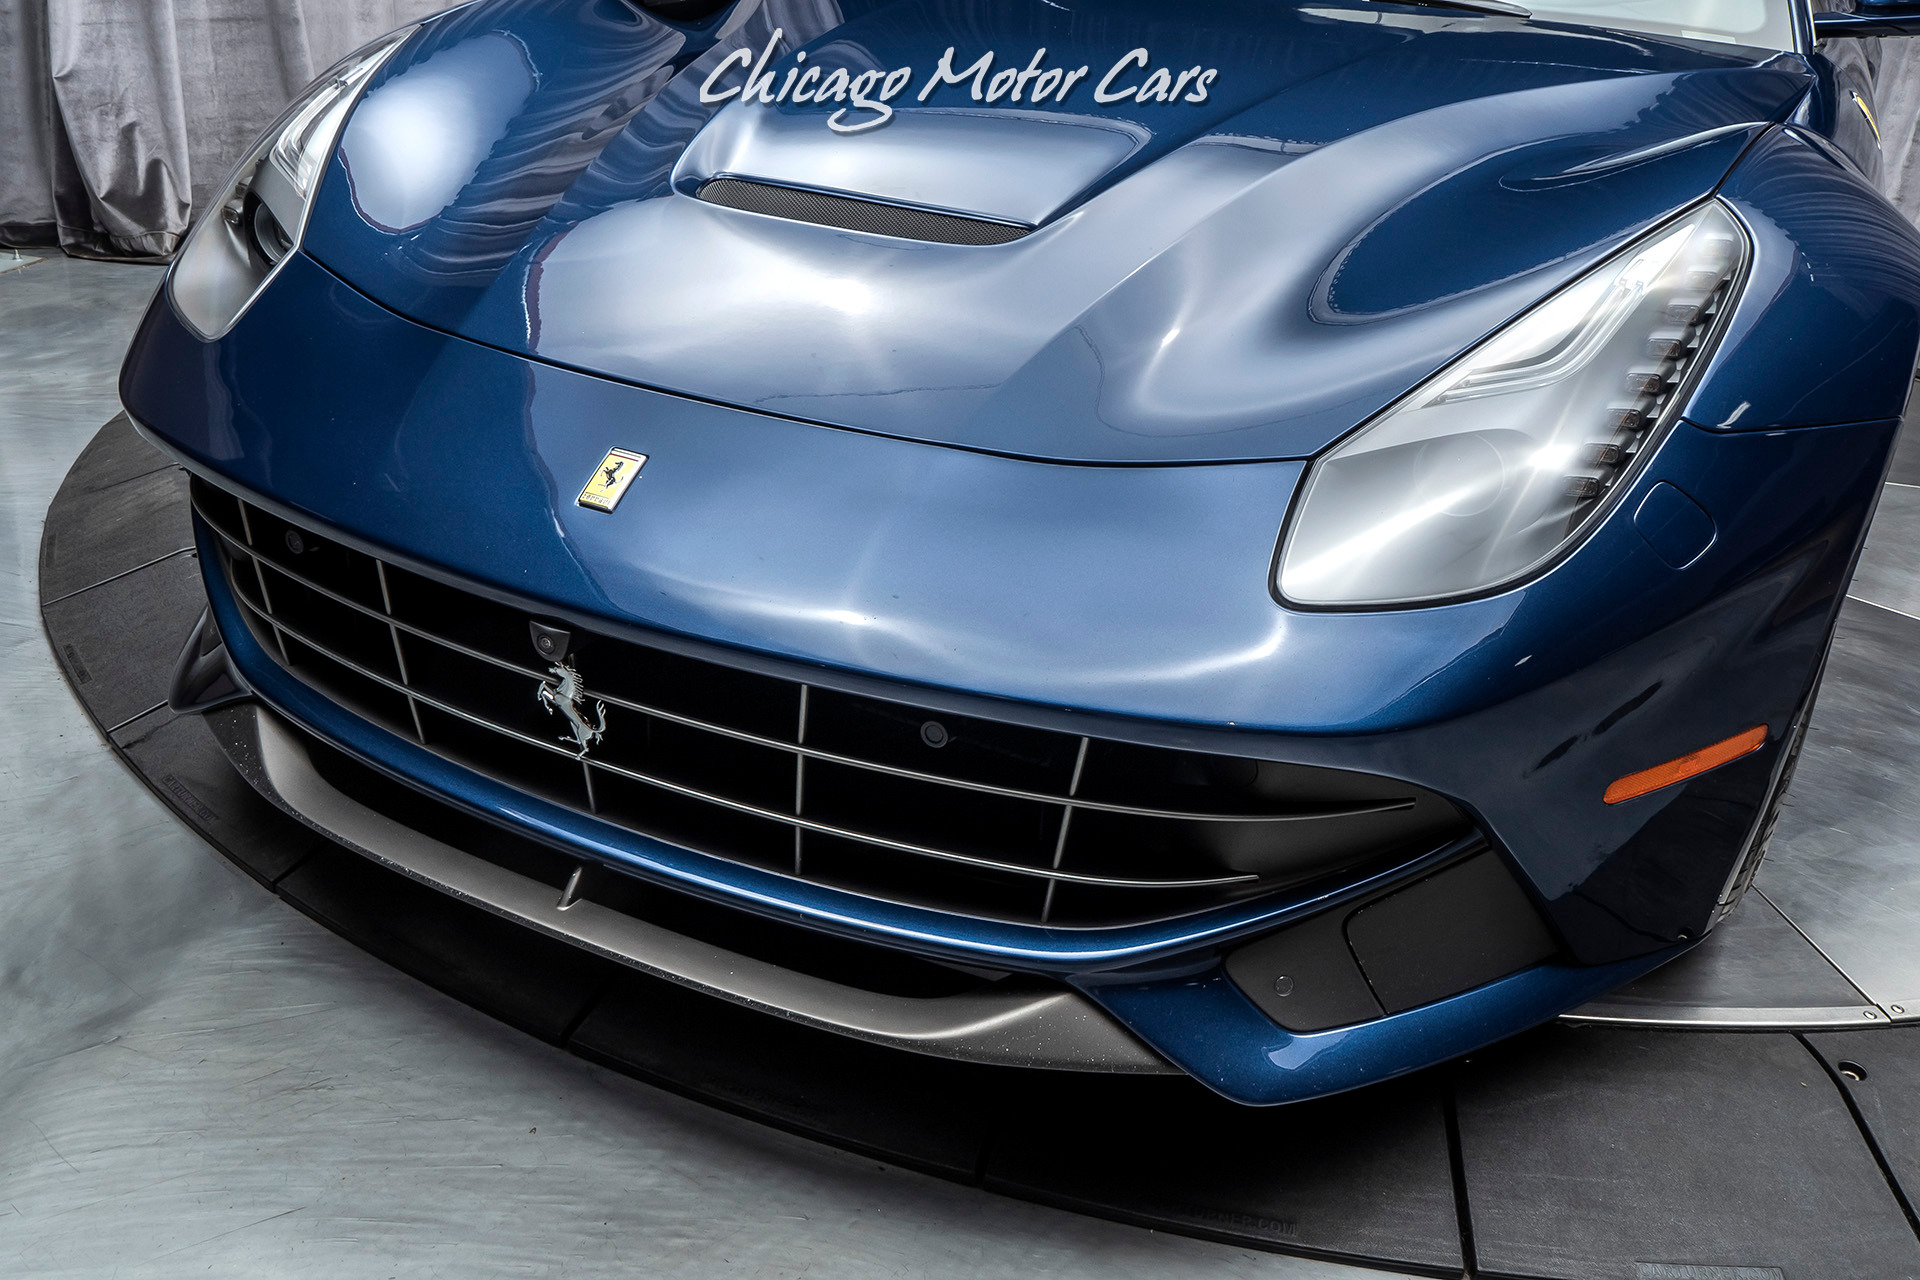 Used-2016-Ferrari-F12-Berlinetta-Coupe-MSRP-411K-CARBON-FIBER-DRIVING-ZONE--LEDS